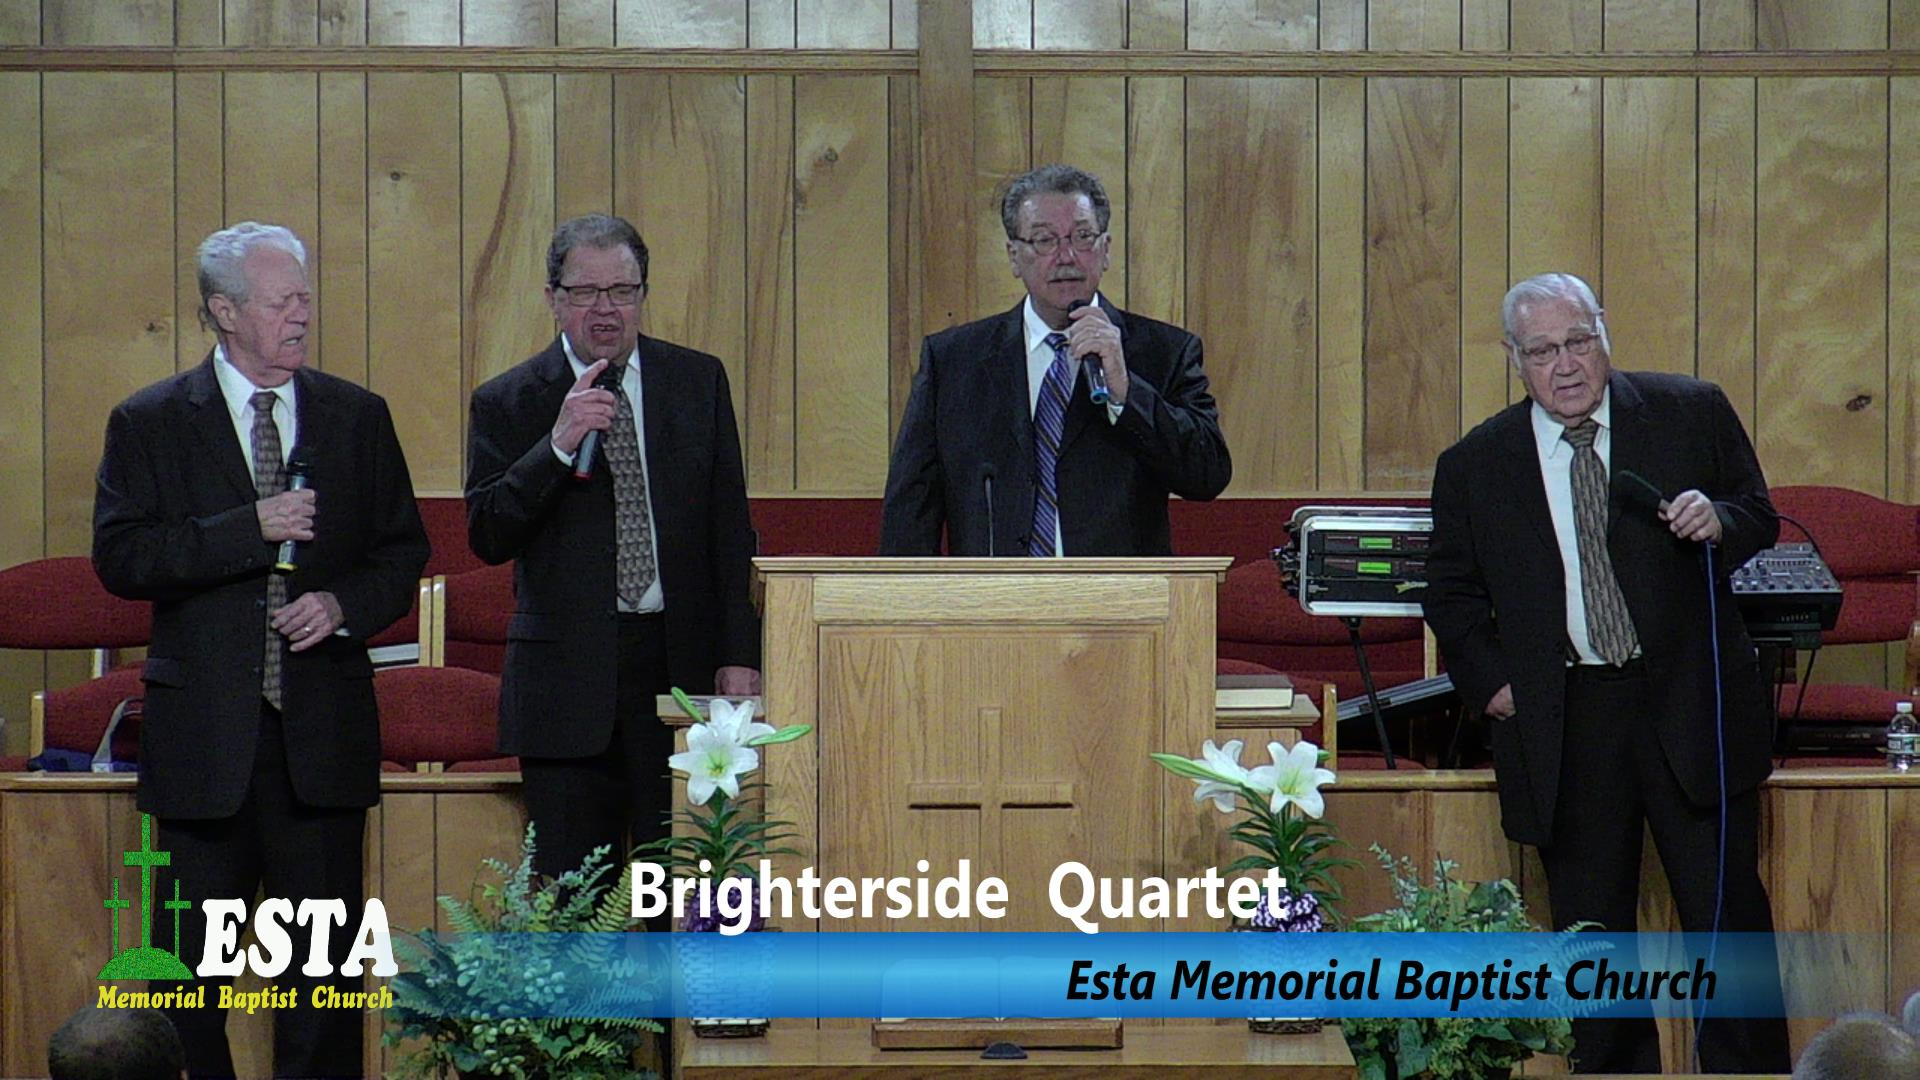 Brighterside Quartet at Esta